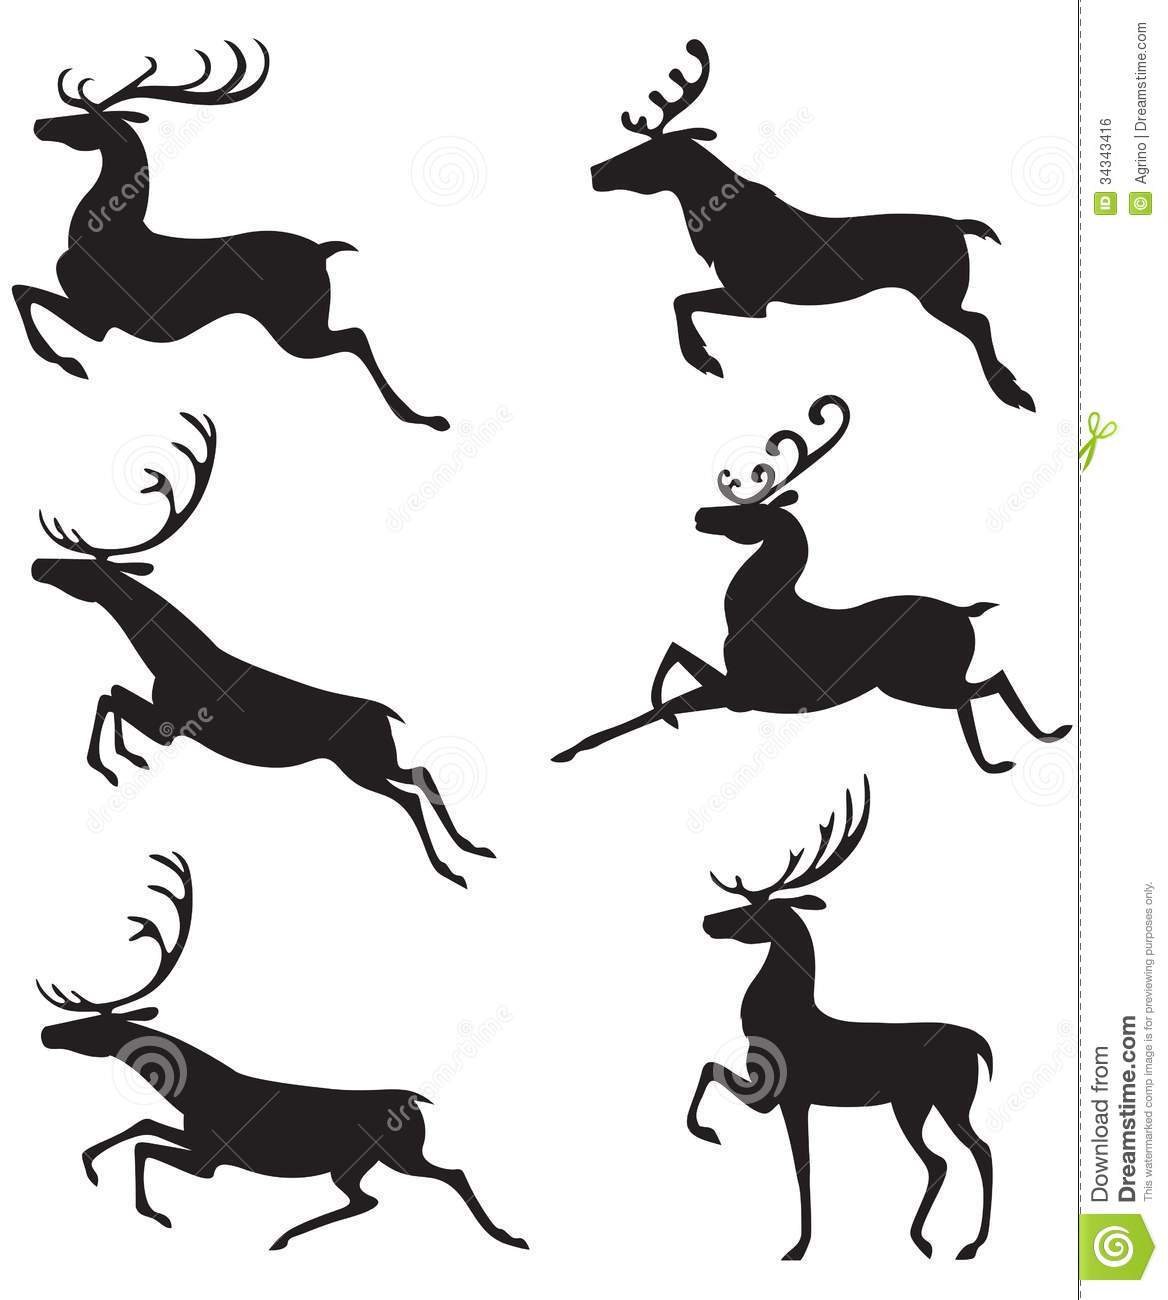 Jumping Reindeer Silhouette Images & Pictures - Becuo